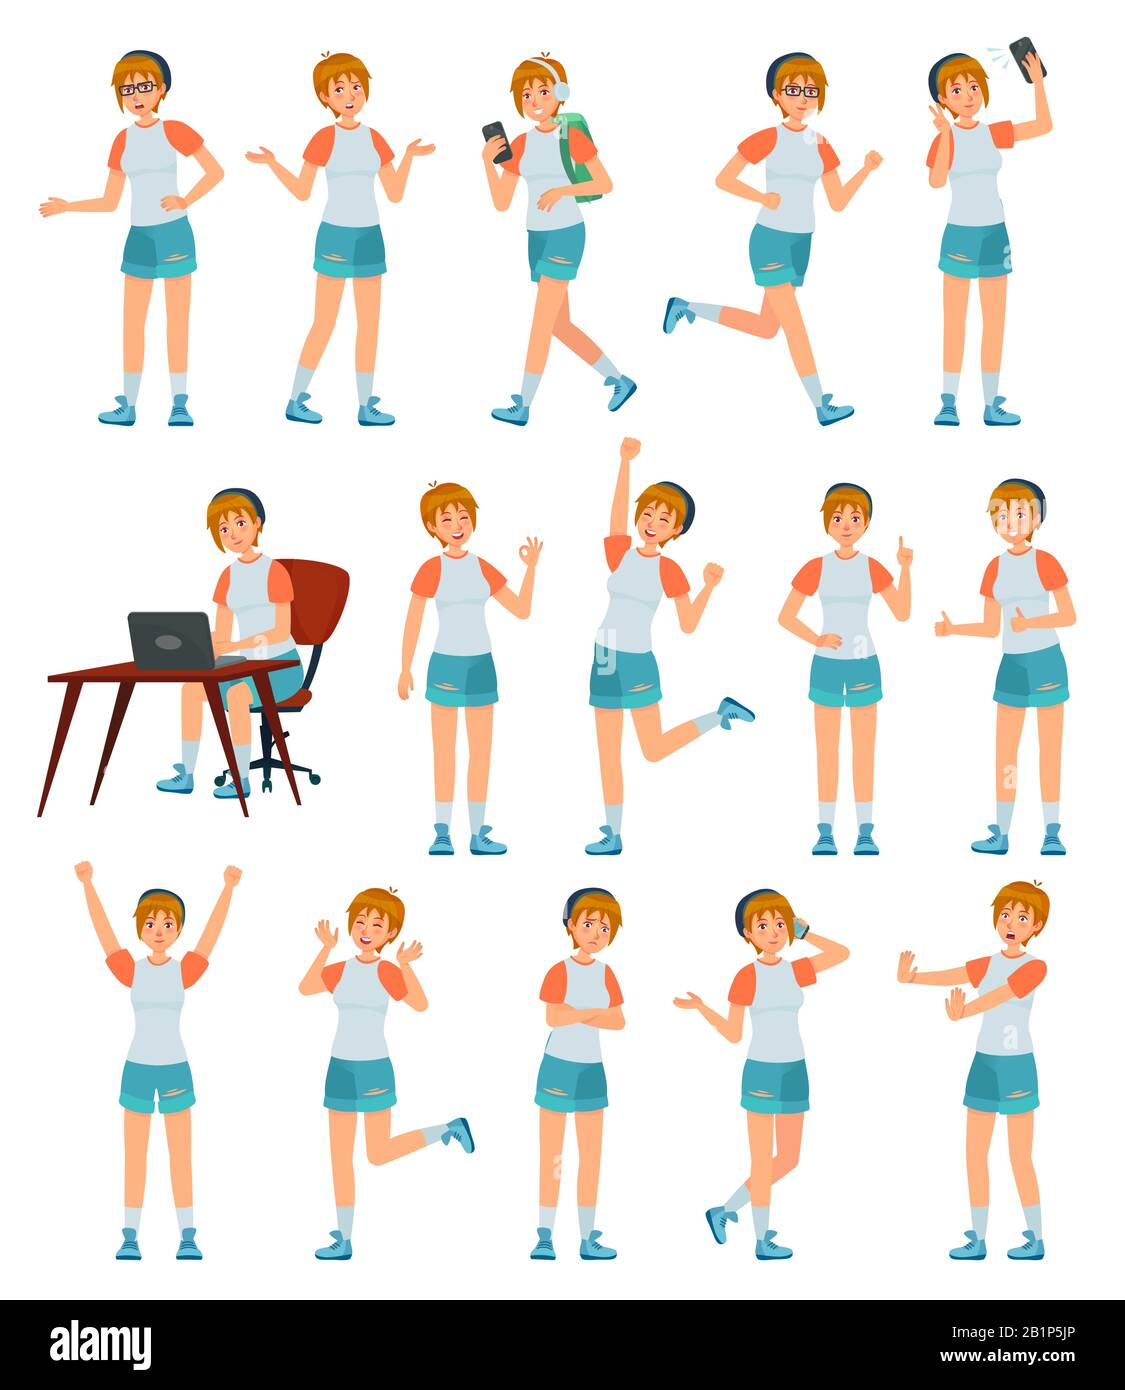 Cartoon Female Teenager Character Young Teenage Girl In Different Poses And Actions Vector Illustration Set Cheerful Modern Schoolgirl In Casual Stock Vector Image Art Alamy